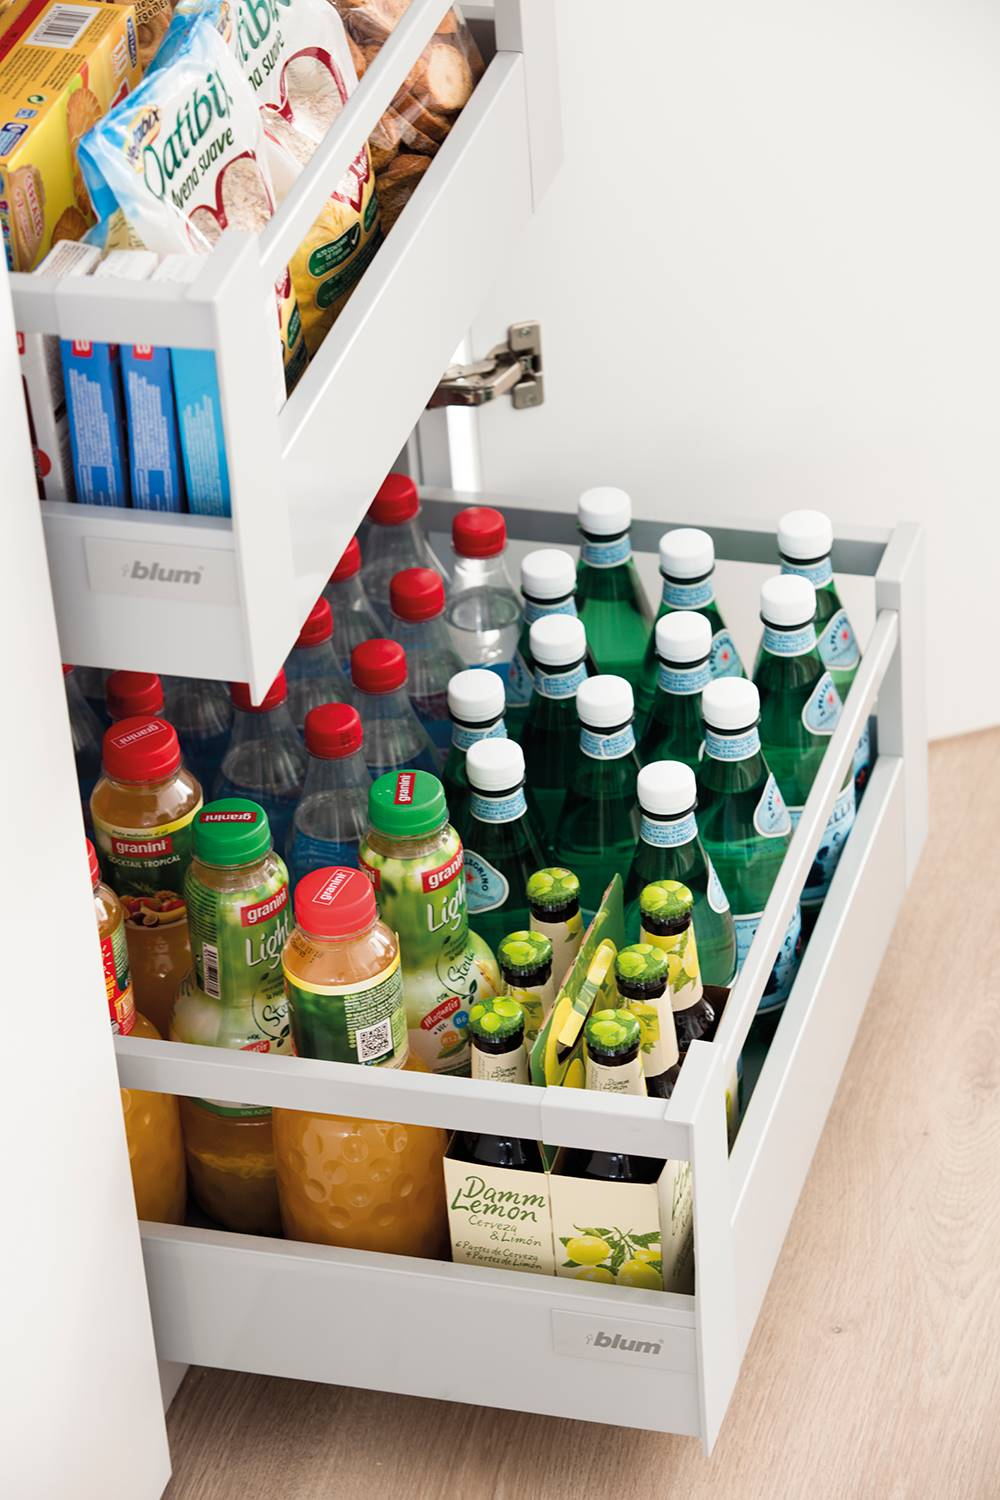 Kitchen-thousand-cabinets-00497489.  Drawers that expose the contents